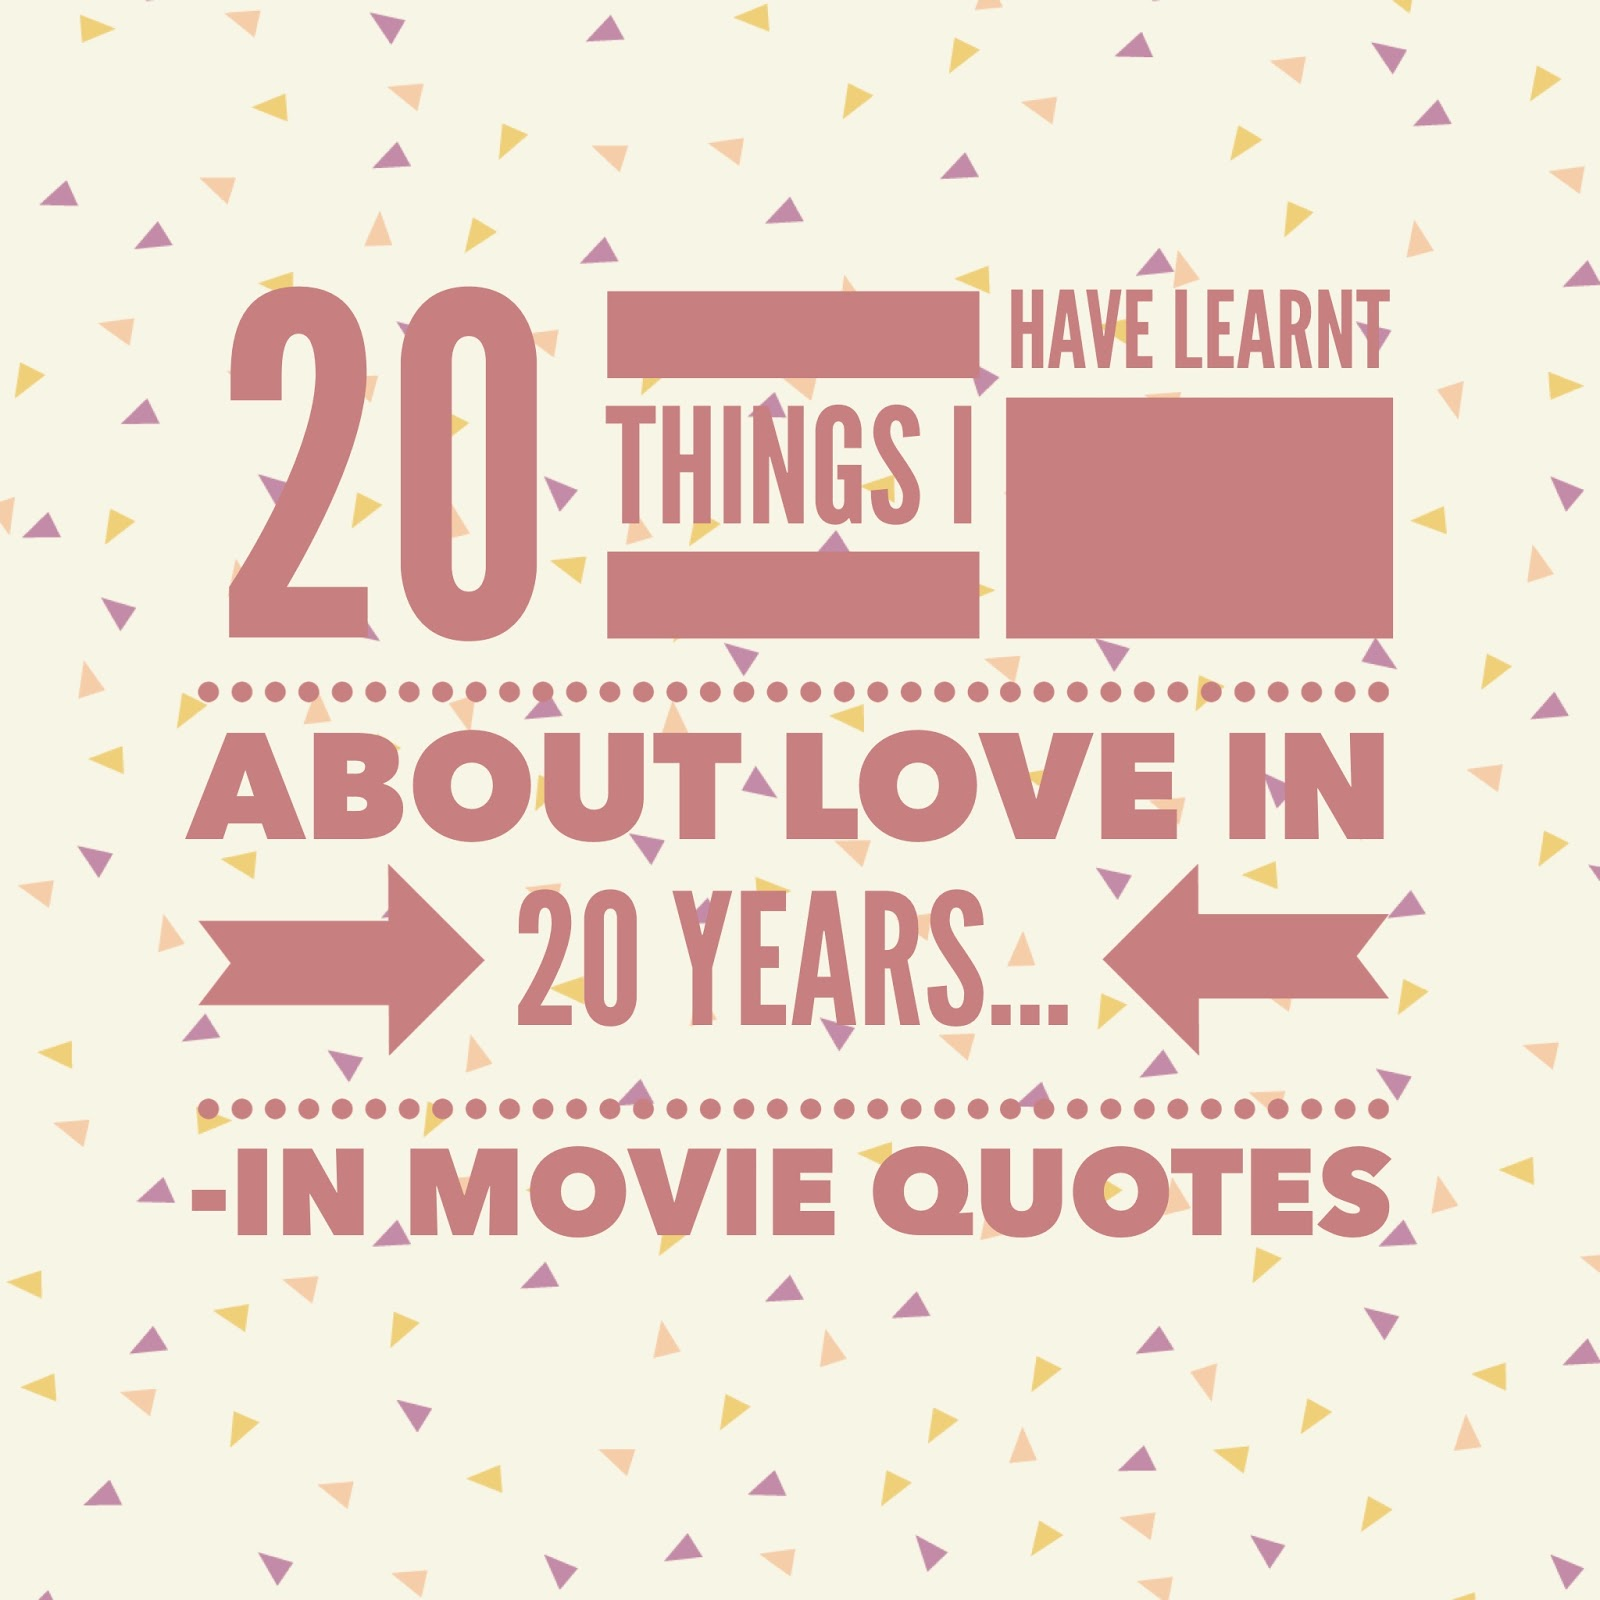 Love Marriage Quotes Vi Babybrain 20 Things I've Learnt About Love In 20 Years…in